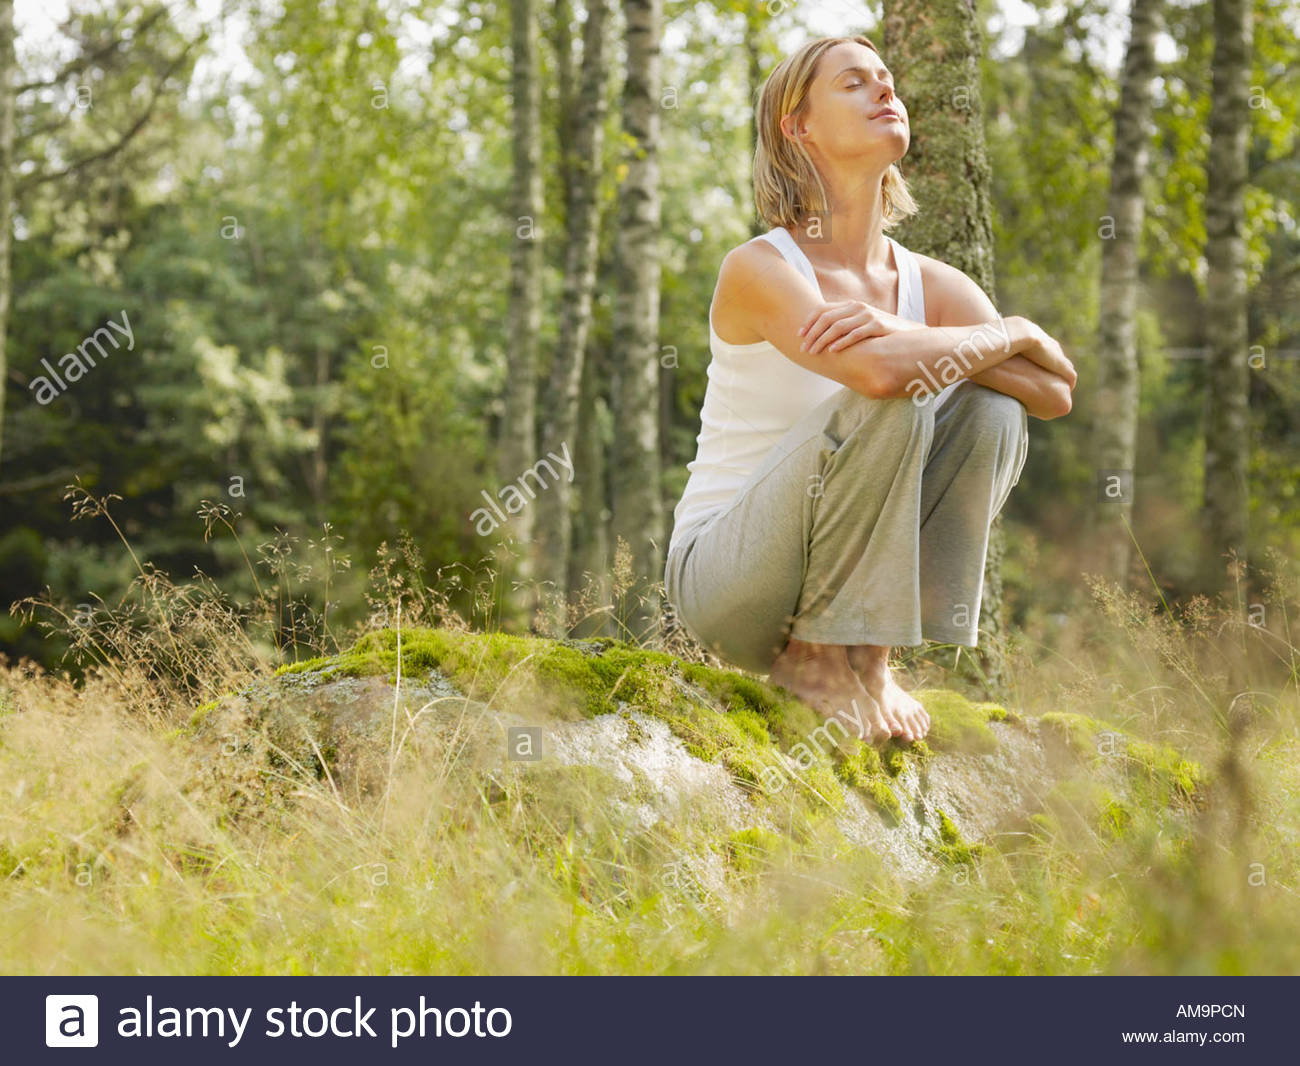 Woman crouching on a large rock in forest with eyes closed. - Stock Image